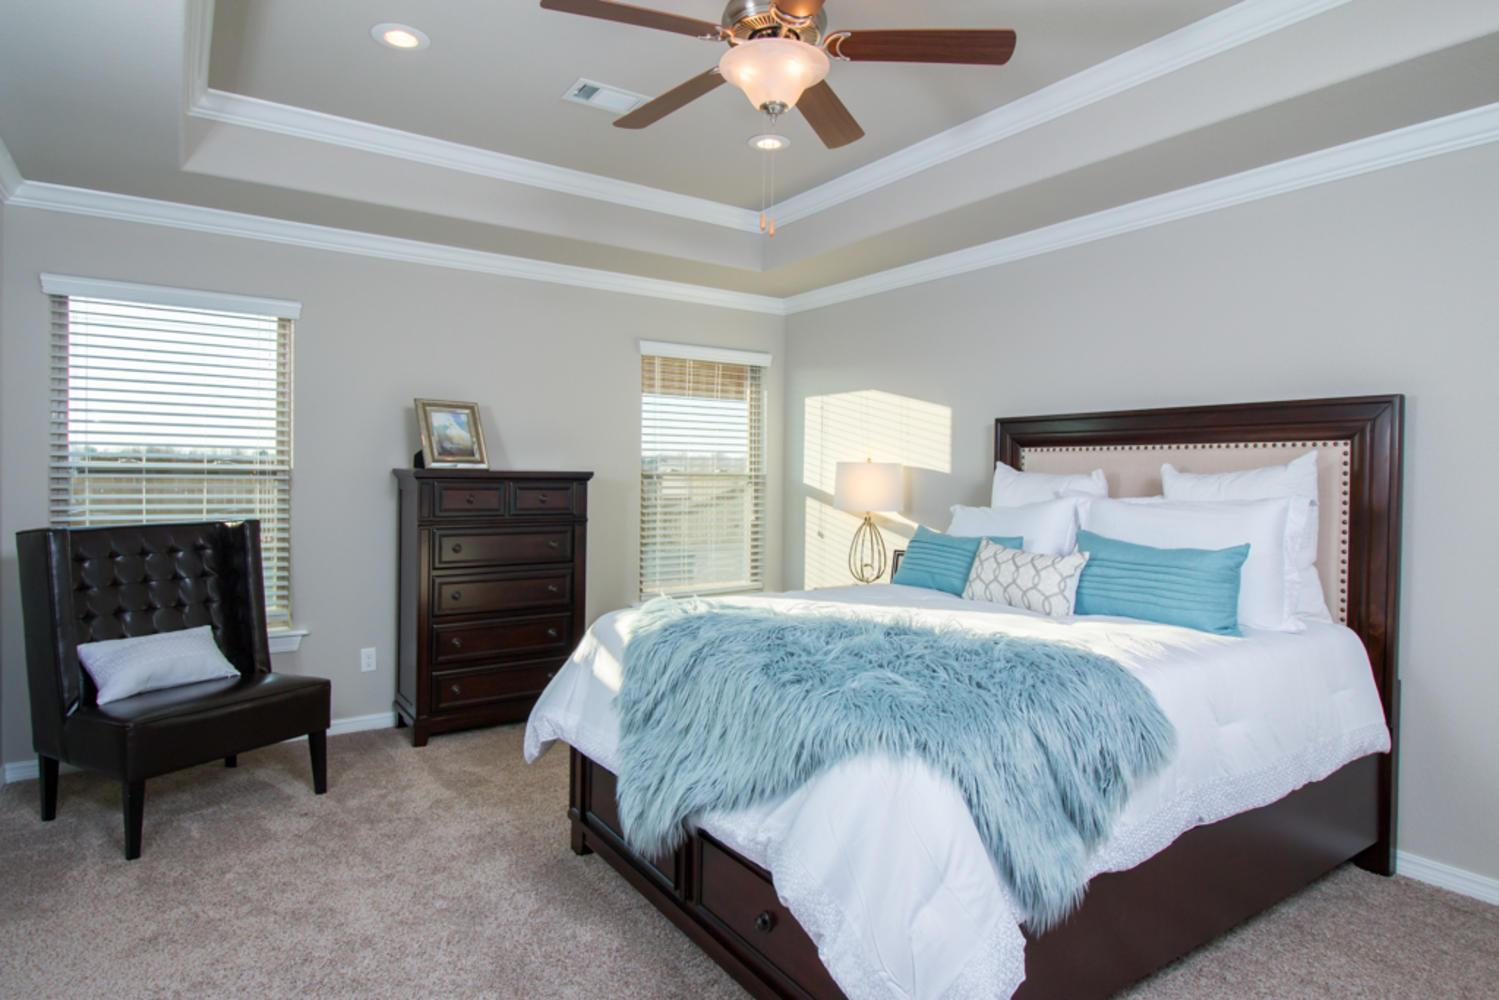 Bedroom featured in the 1862 By Riverwood Homes - Arkansas in Fayetteville, AR